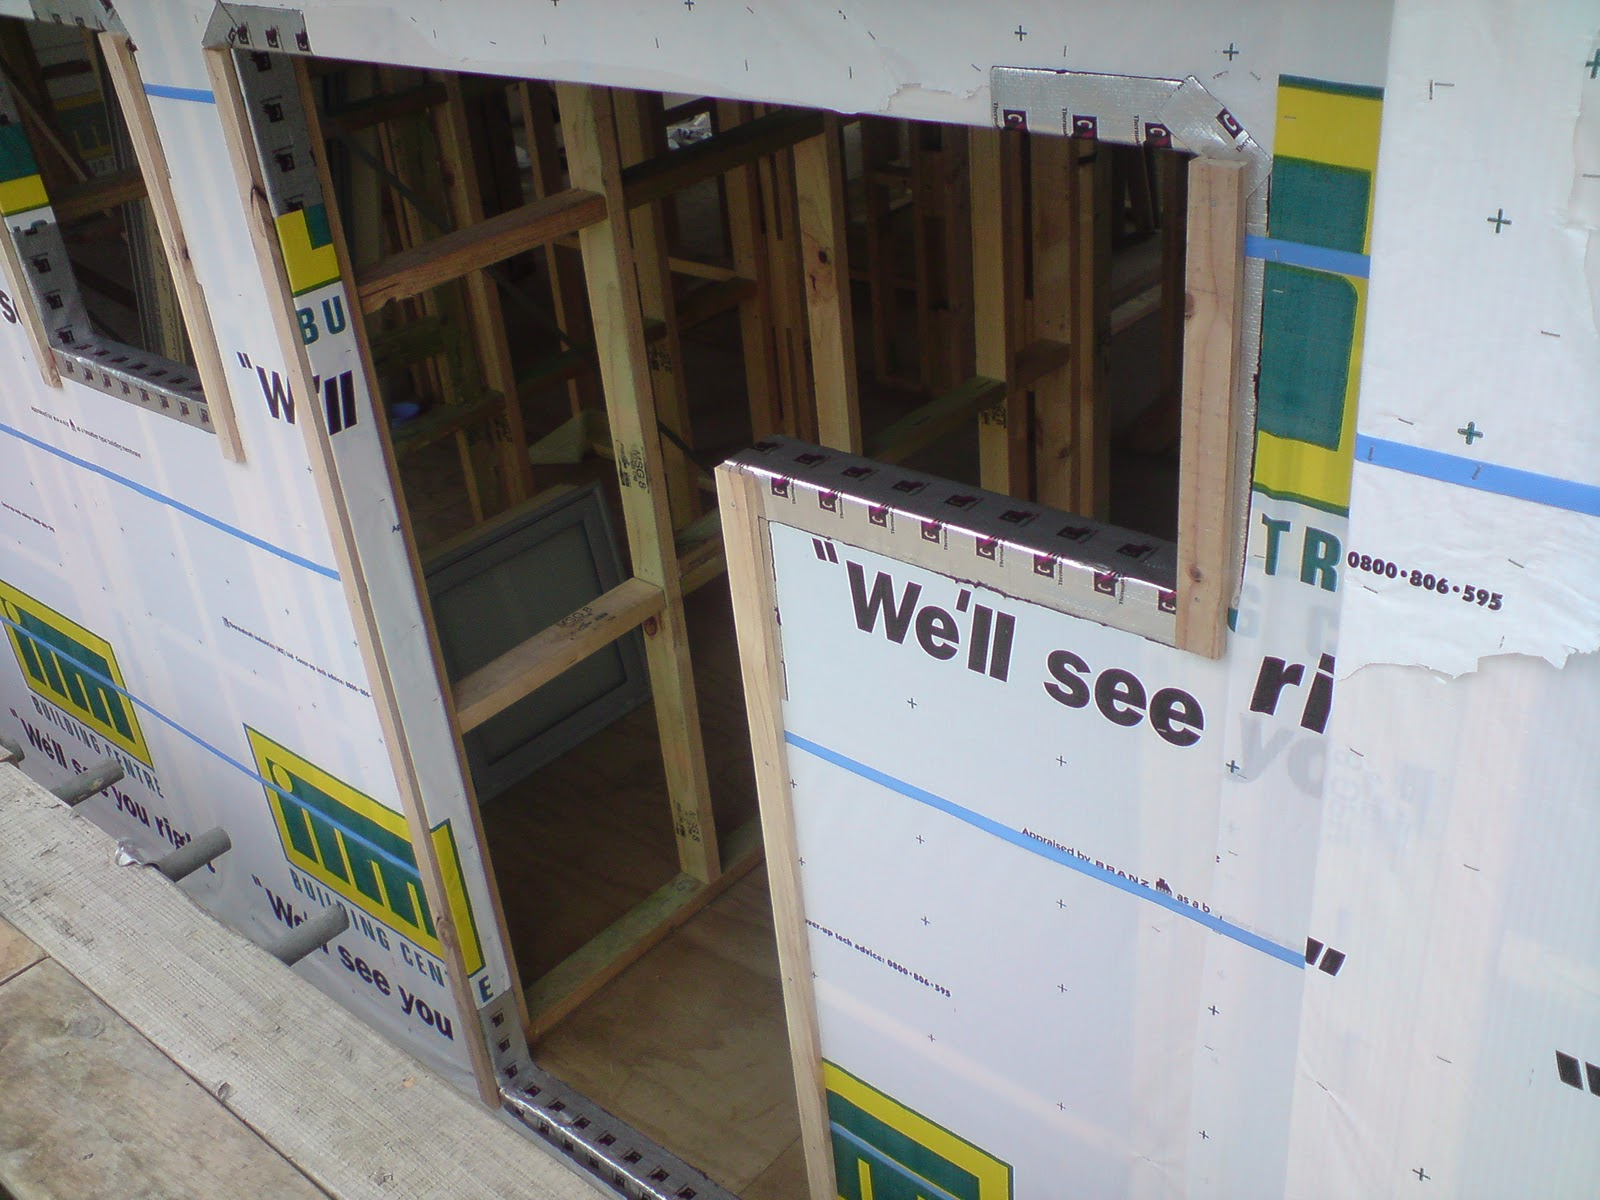 Andrews blog wrapping house and fitting windows and doors - The house with protruding windows ...